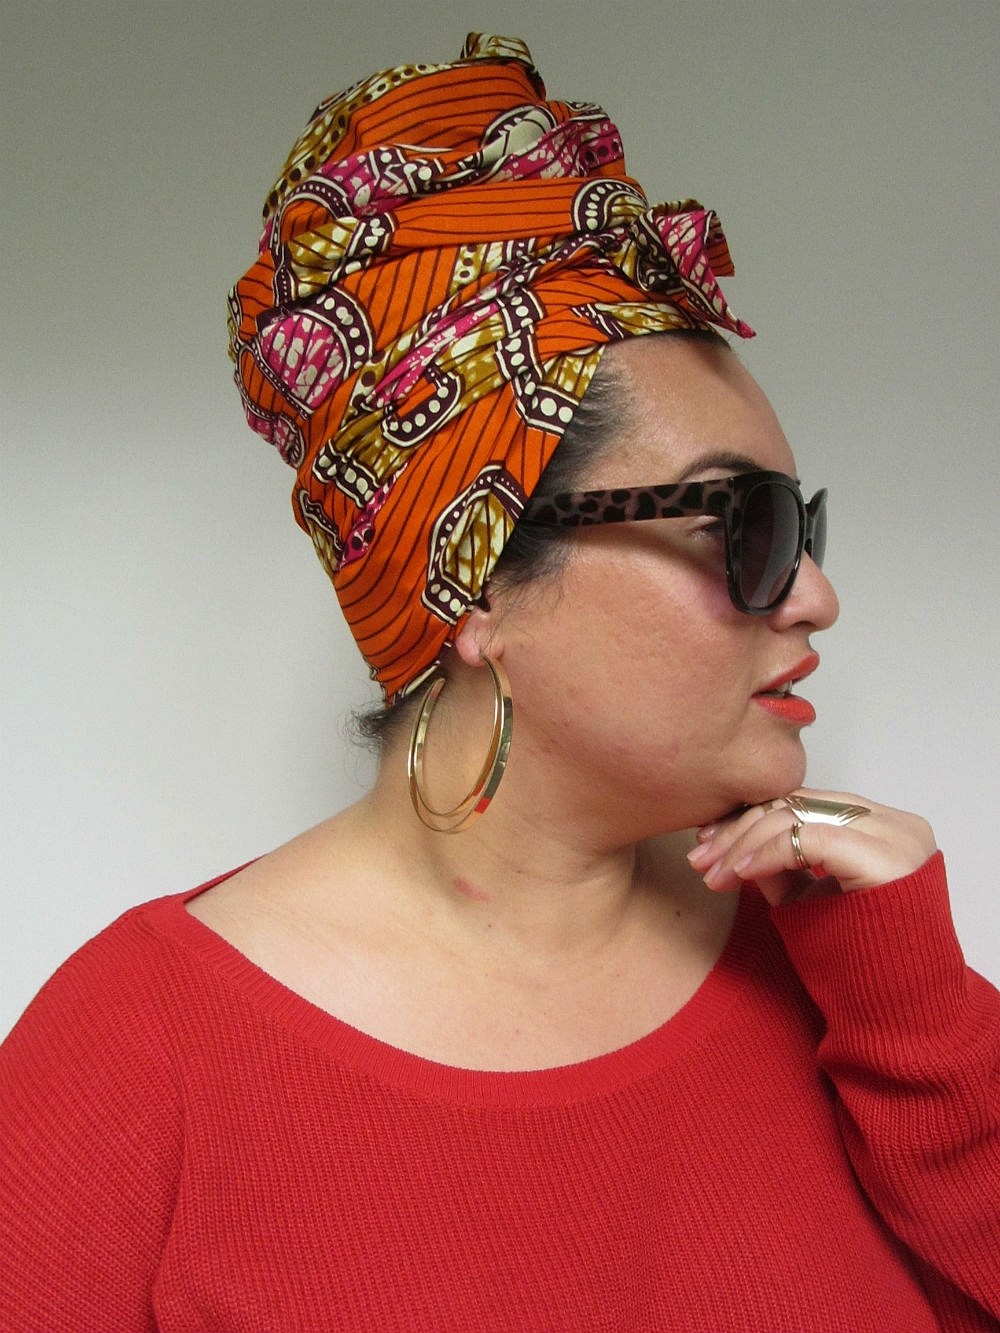 Styling for headwrap MACY consisted of the TURBAN. Instead of tucking in the loose fabric ends, we used these to tie a small side bow. Gold rings and hoops complete the look.